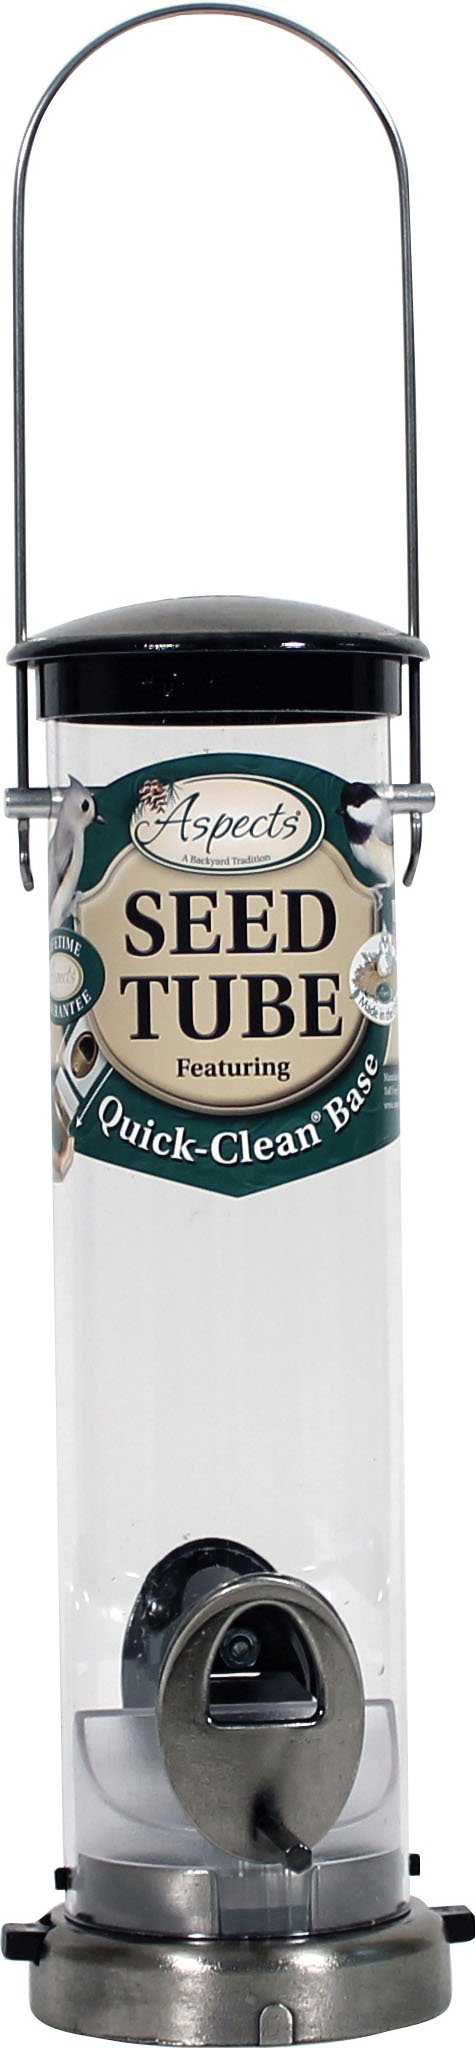 Small Seed Tube Feeder in Brushed Nickel by Aspects